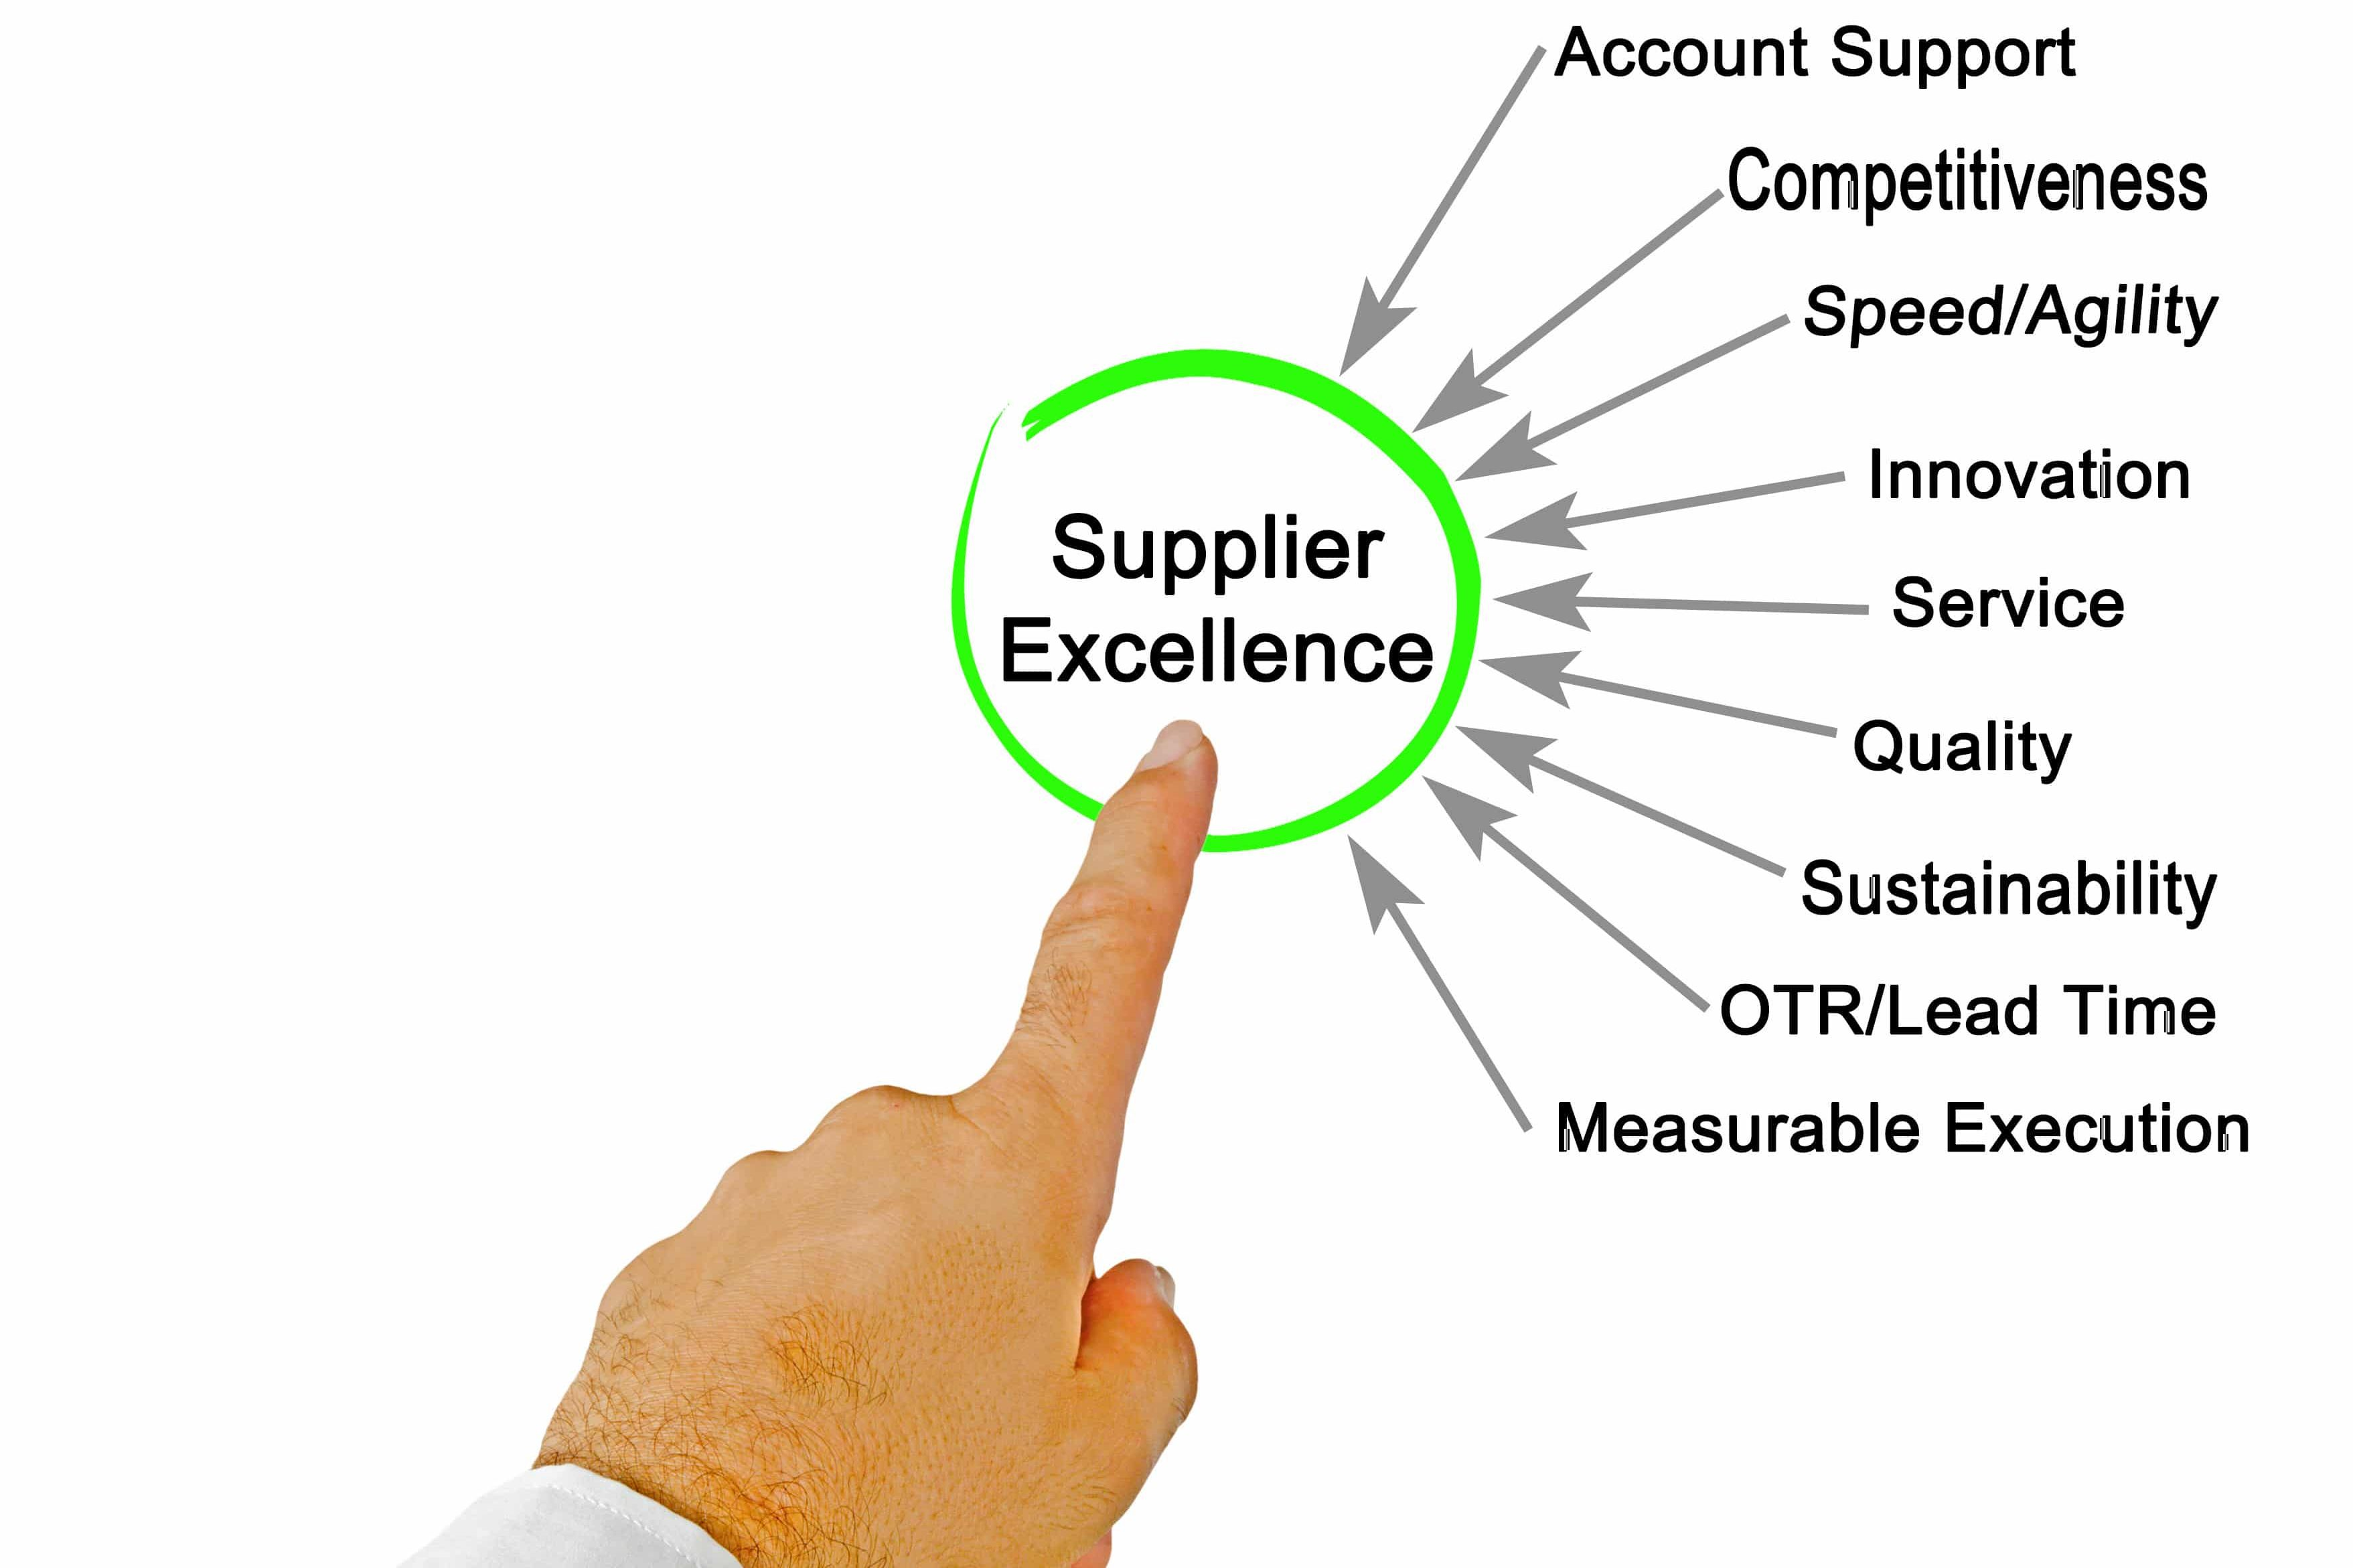 Holistic Supplier Excellence leads to improvement